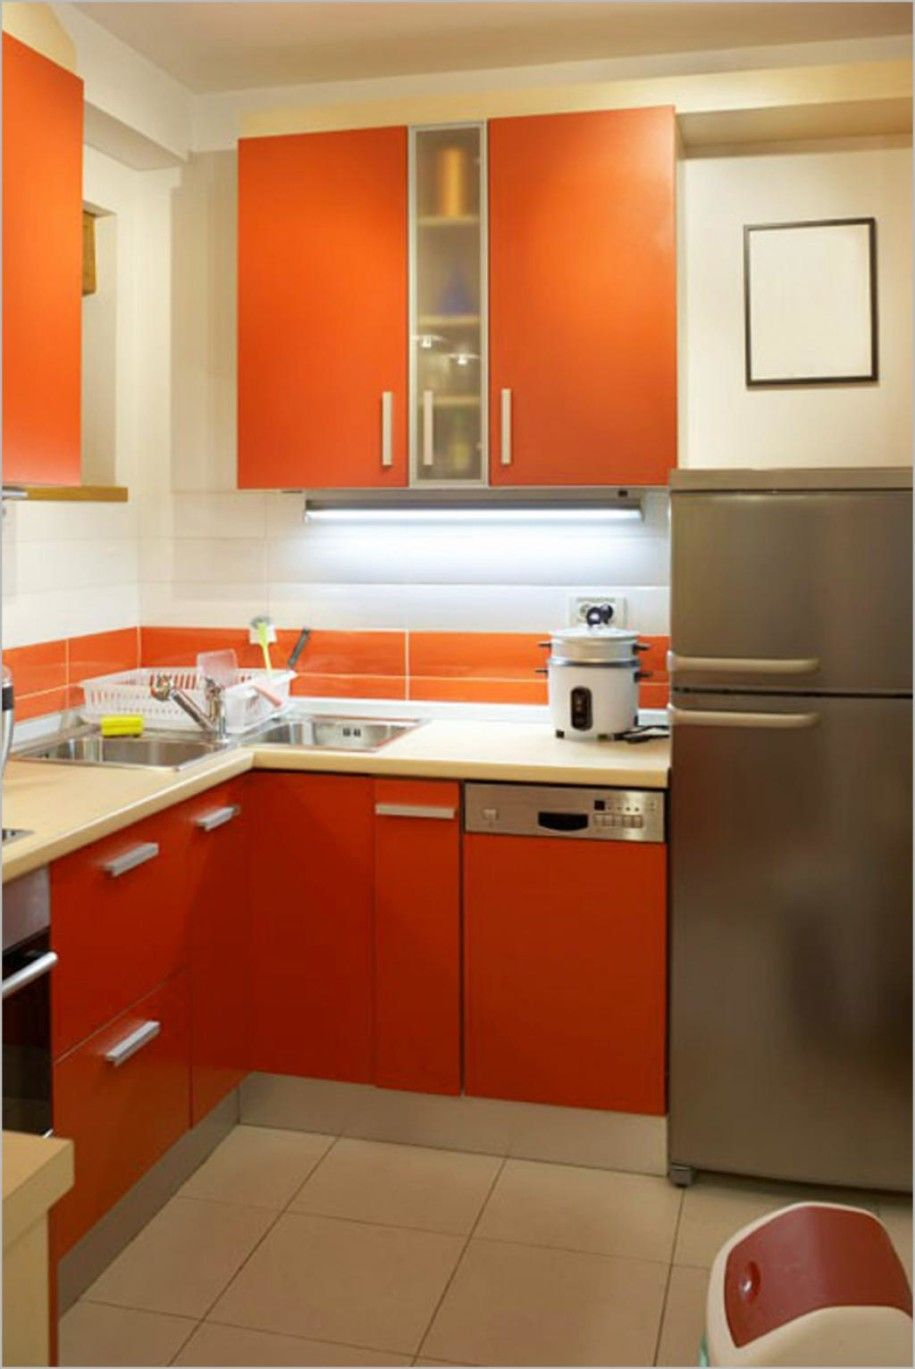 Cozy Small Kitchen Design For Condo With Wood Laminated Floor Orange Kitchen Cabinet Small Kitchen Kitchen Remodel Small Kitchen Cabinet Design Kitchen Layout